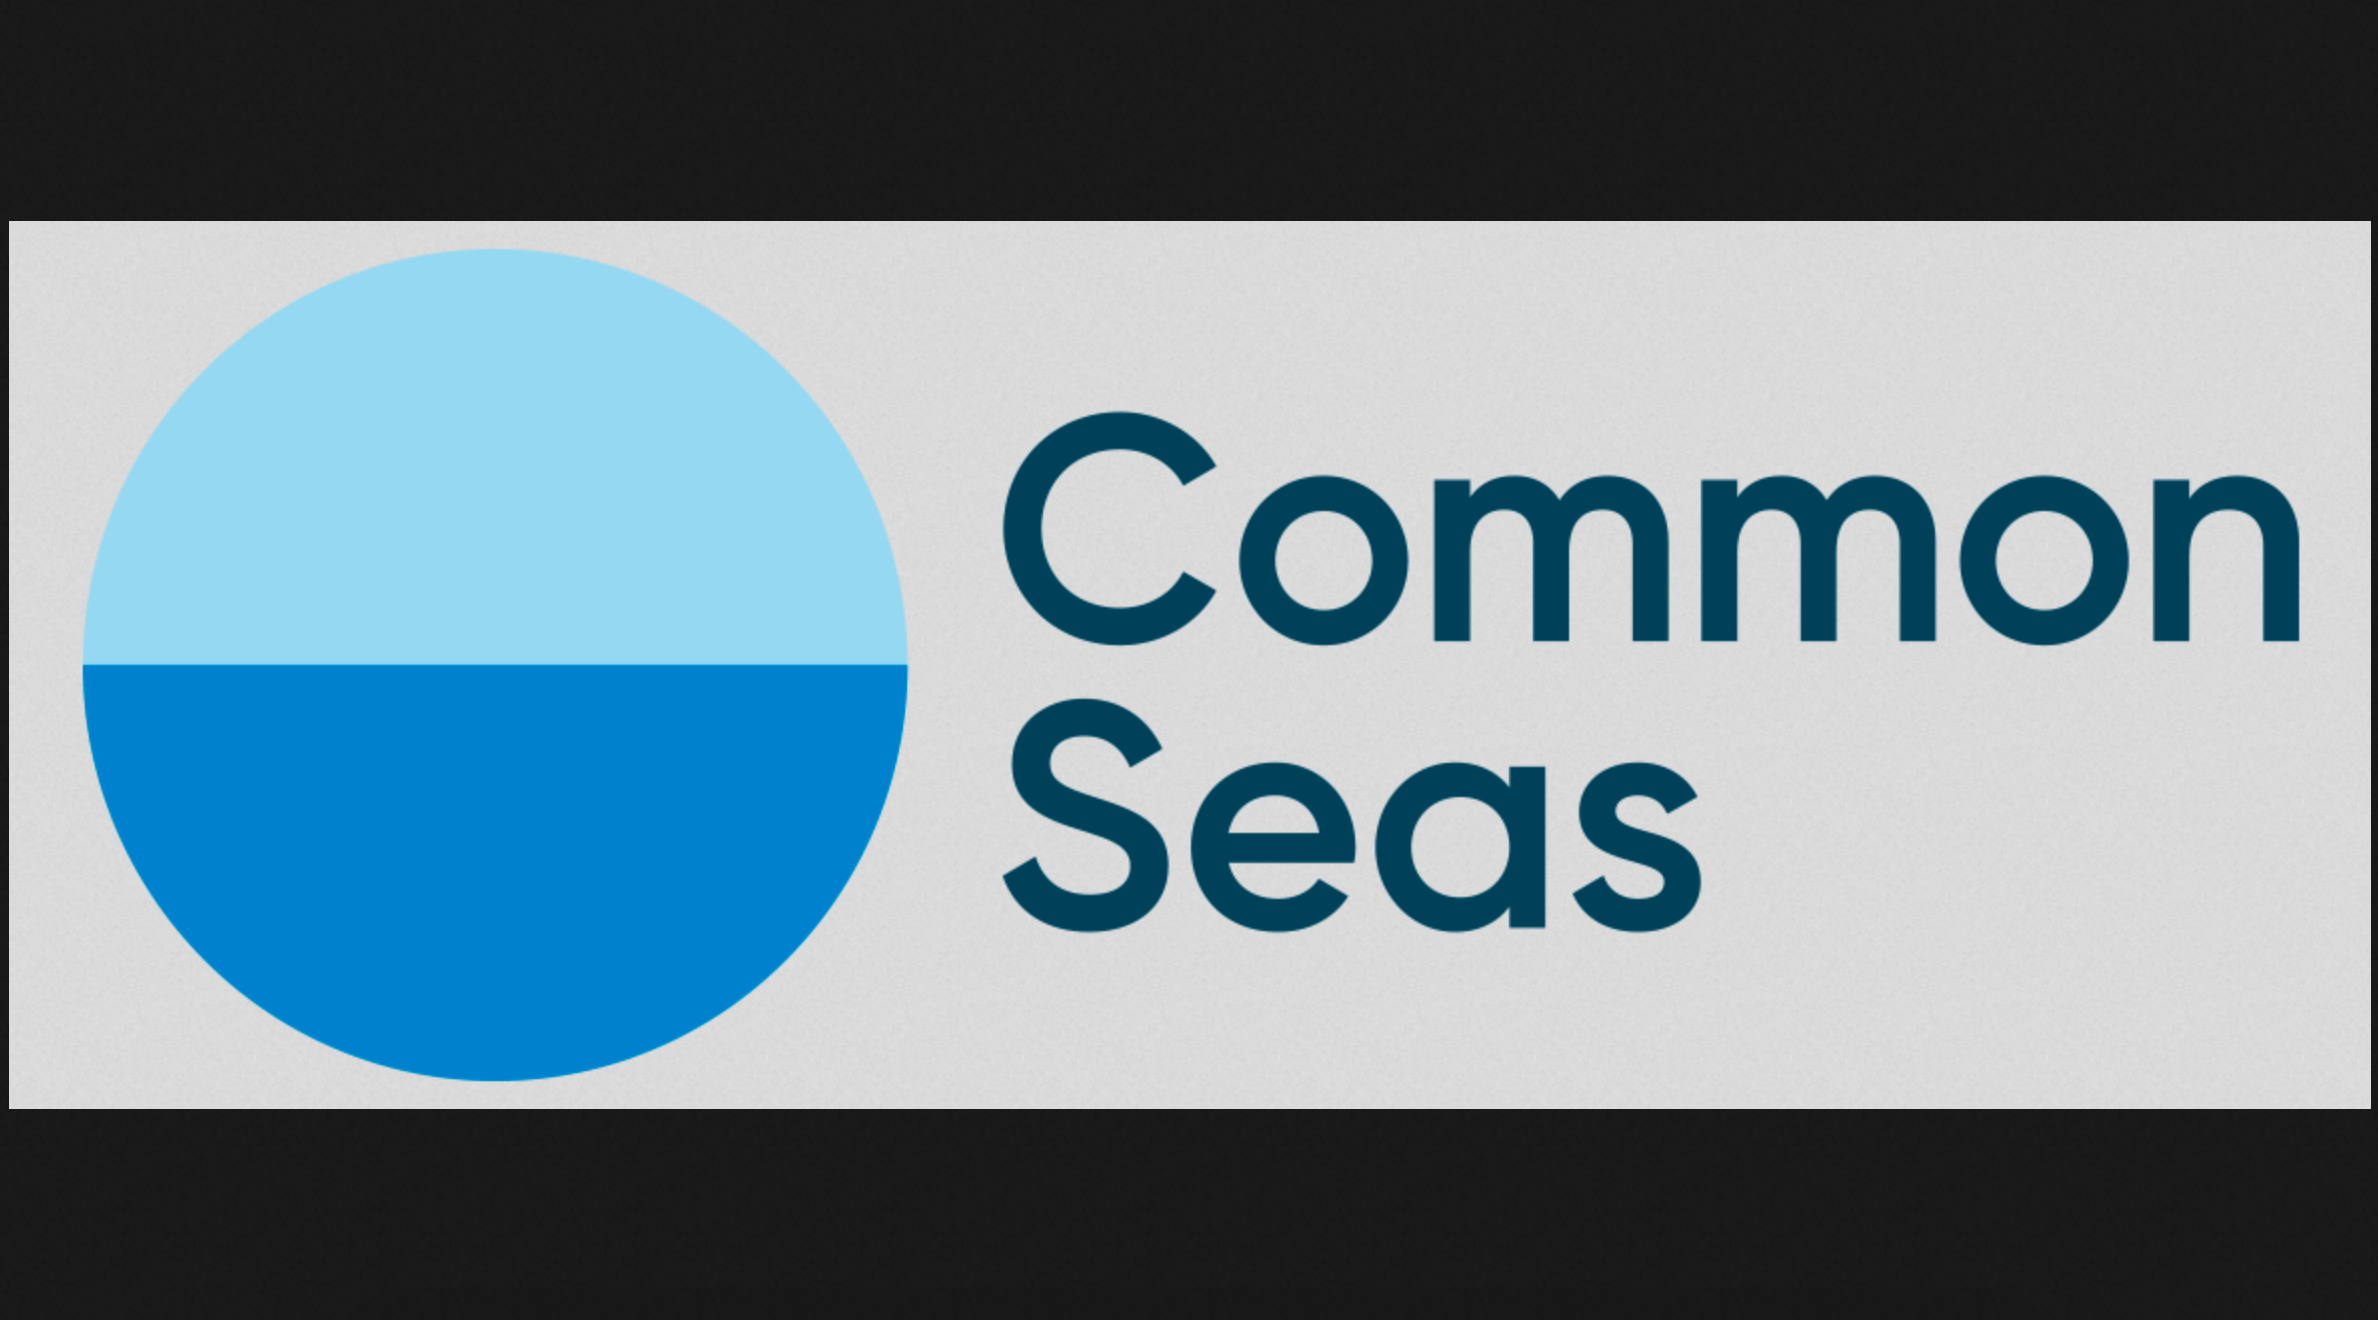 Common Seas